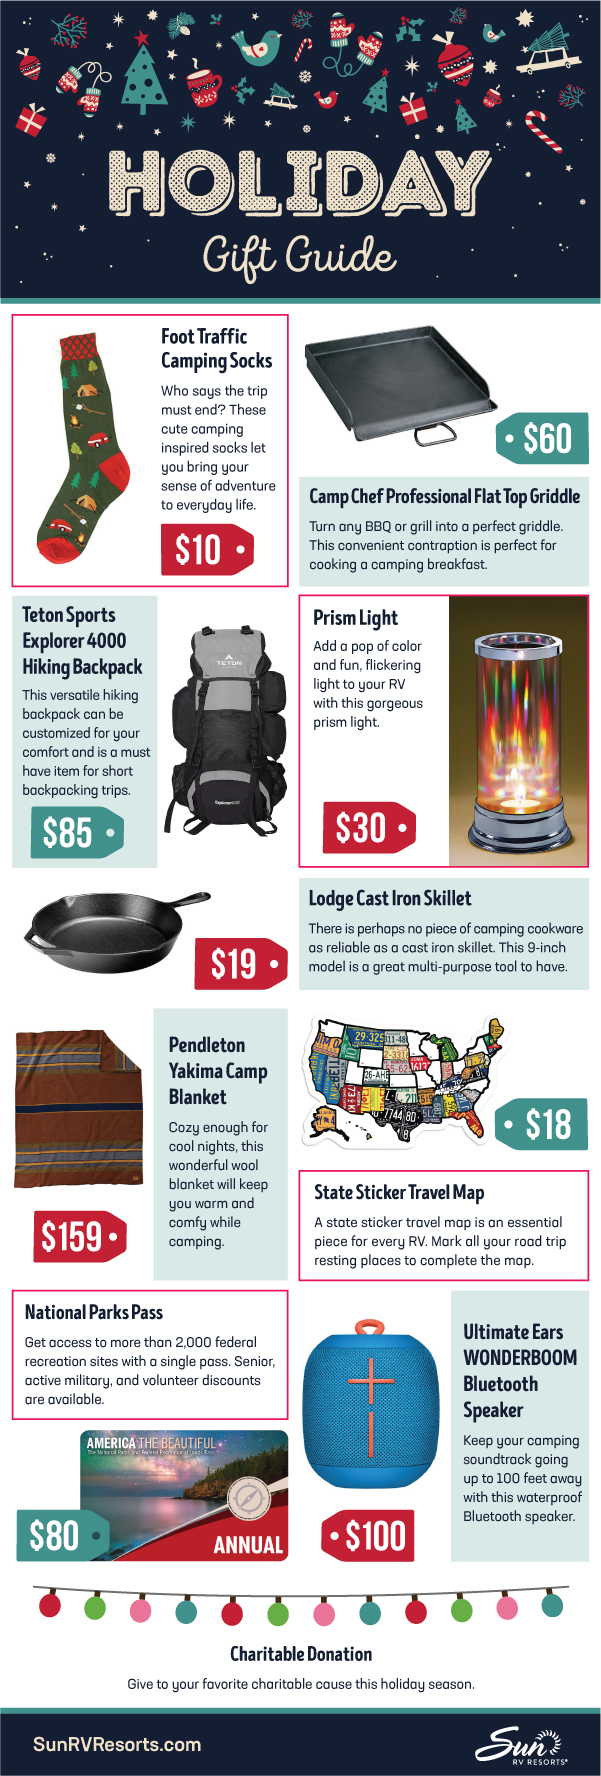 2019 Holiday Gift Guide Infographic